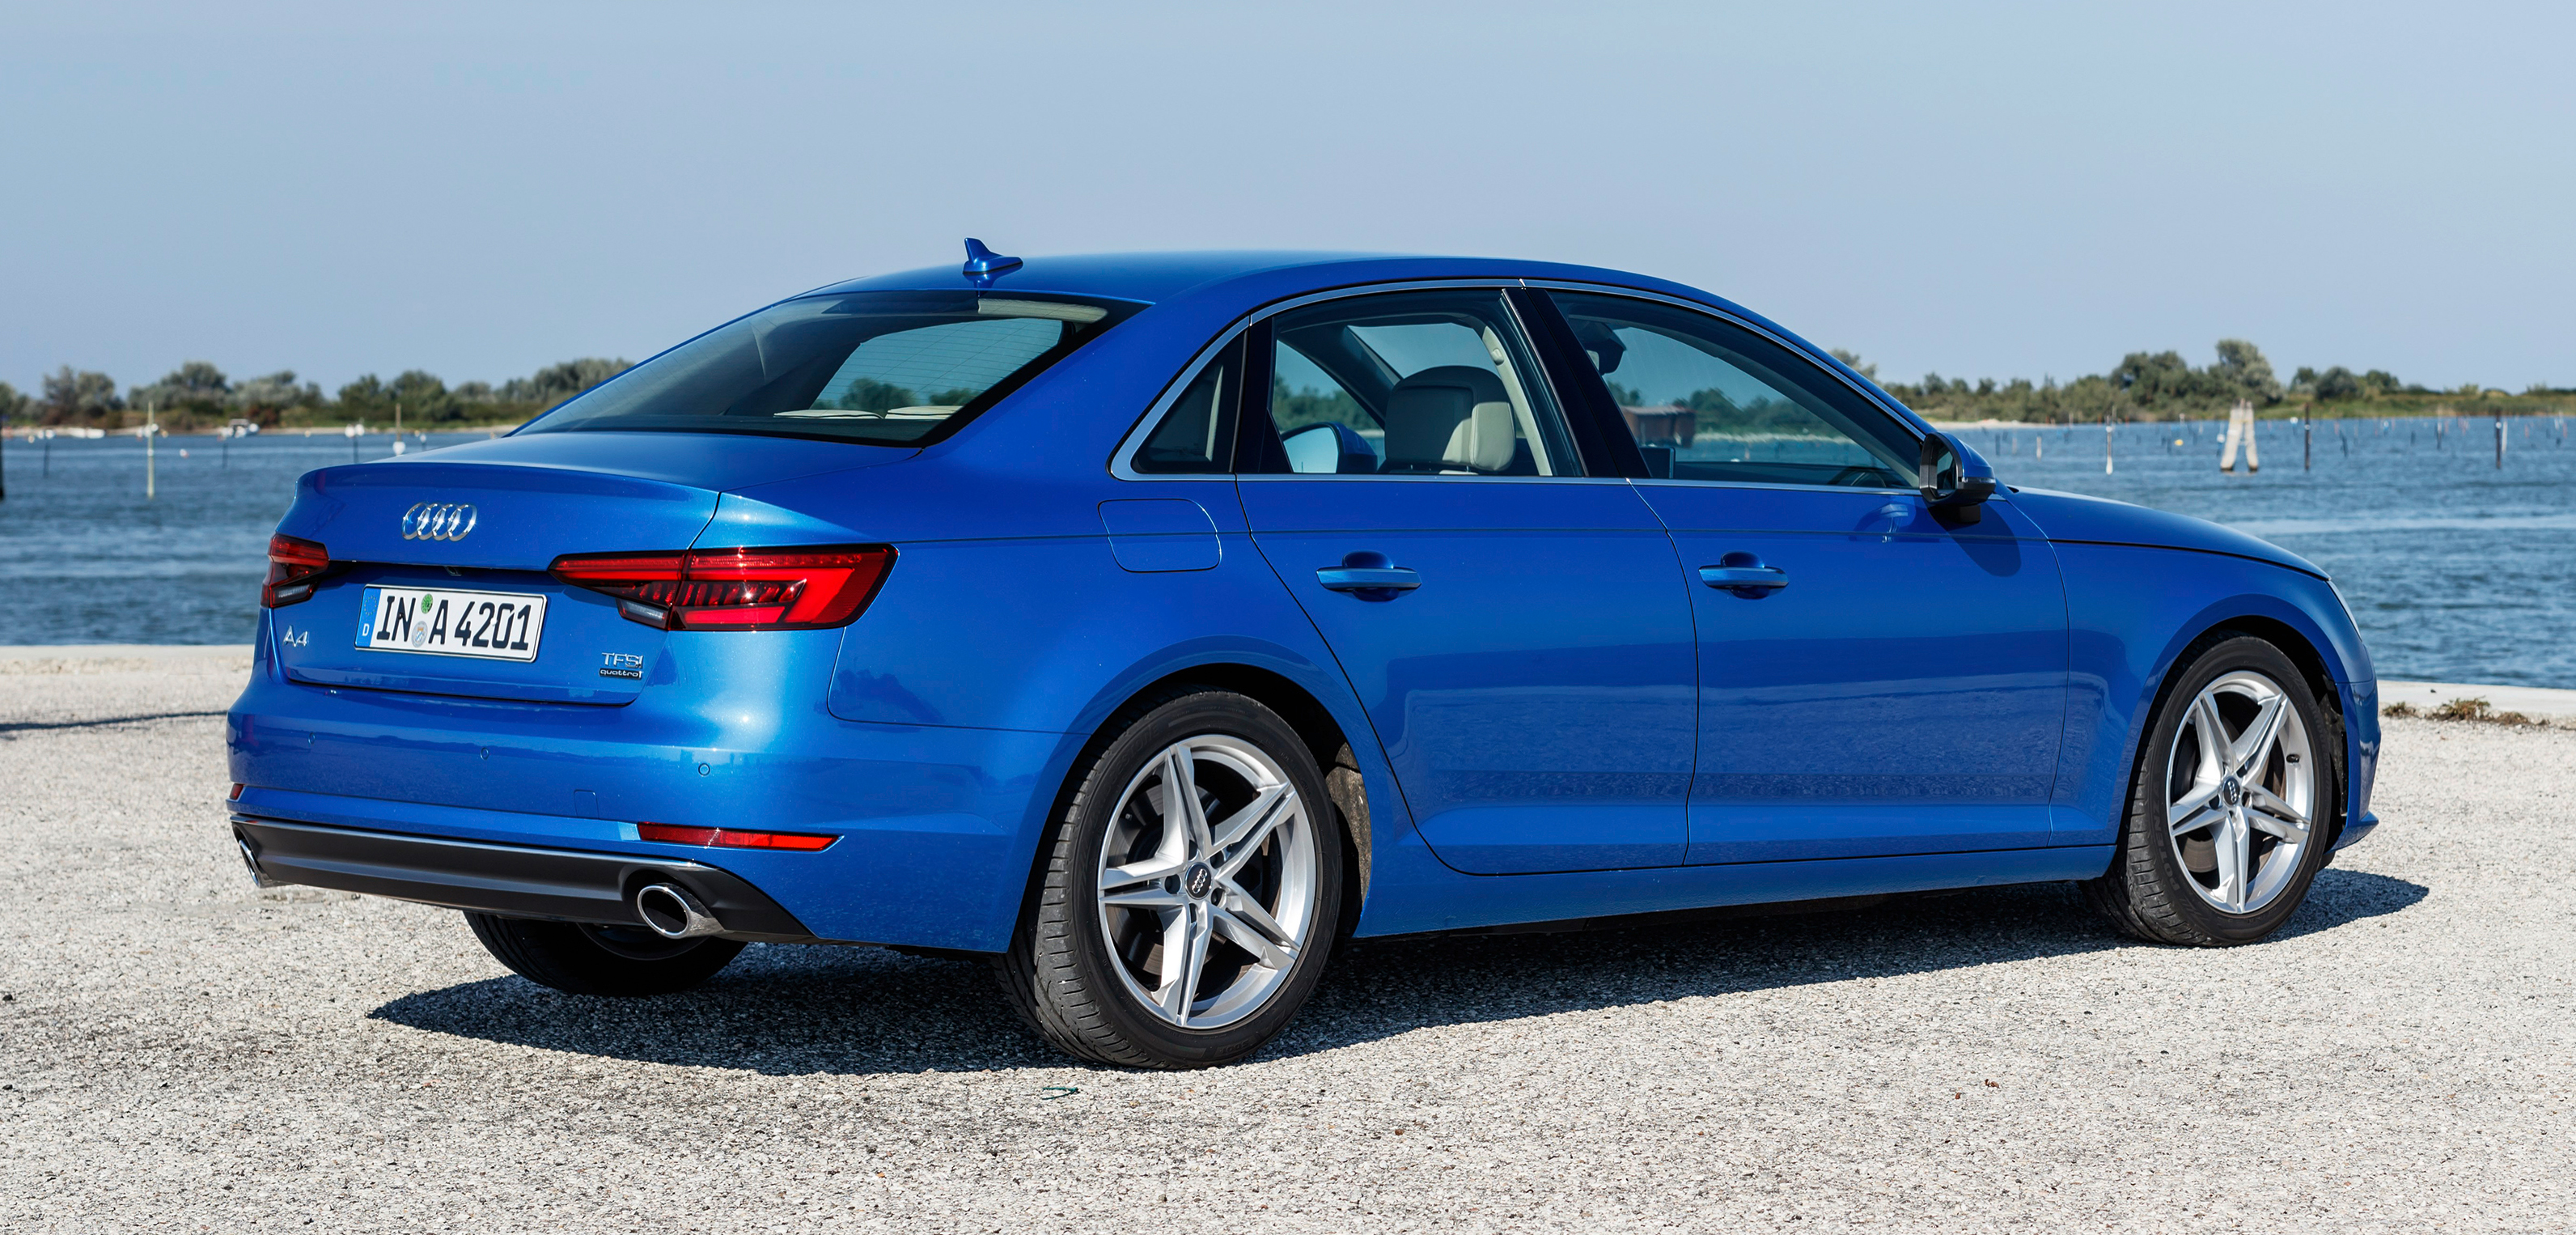 GALLERY: Audi A4 B9 on location in Venice, Italy Image 384226